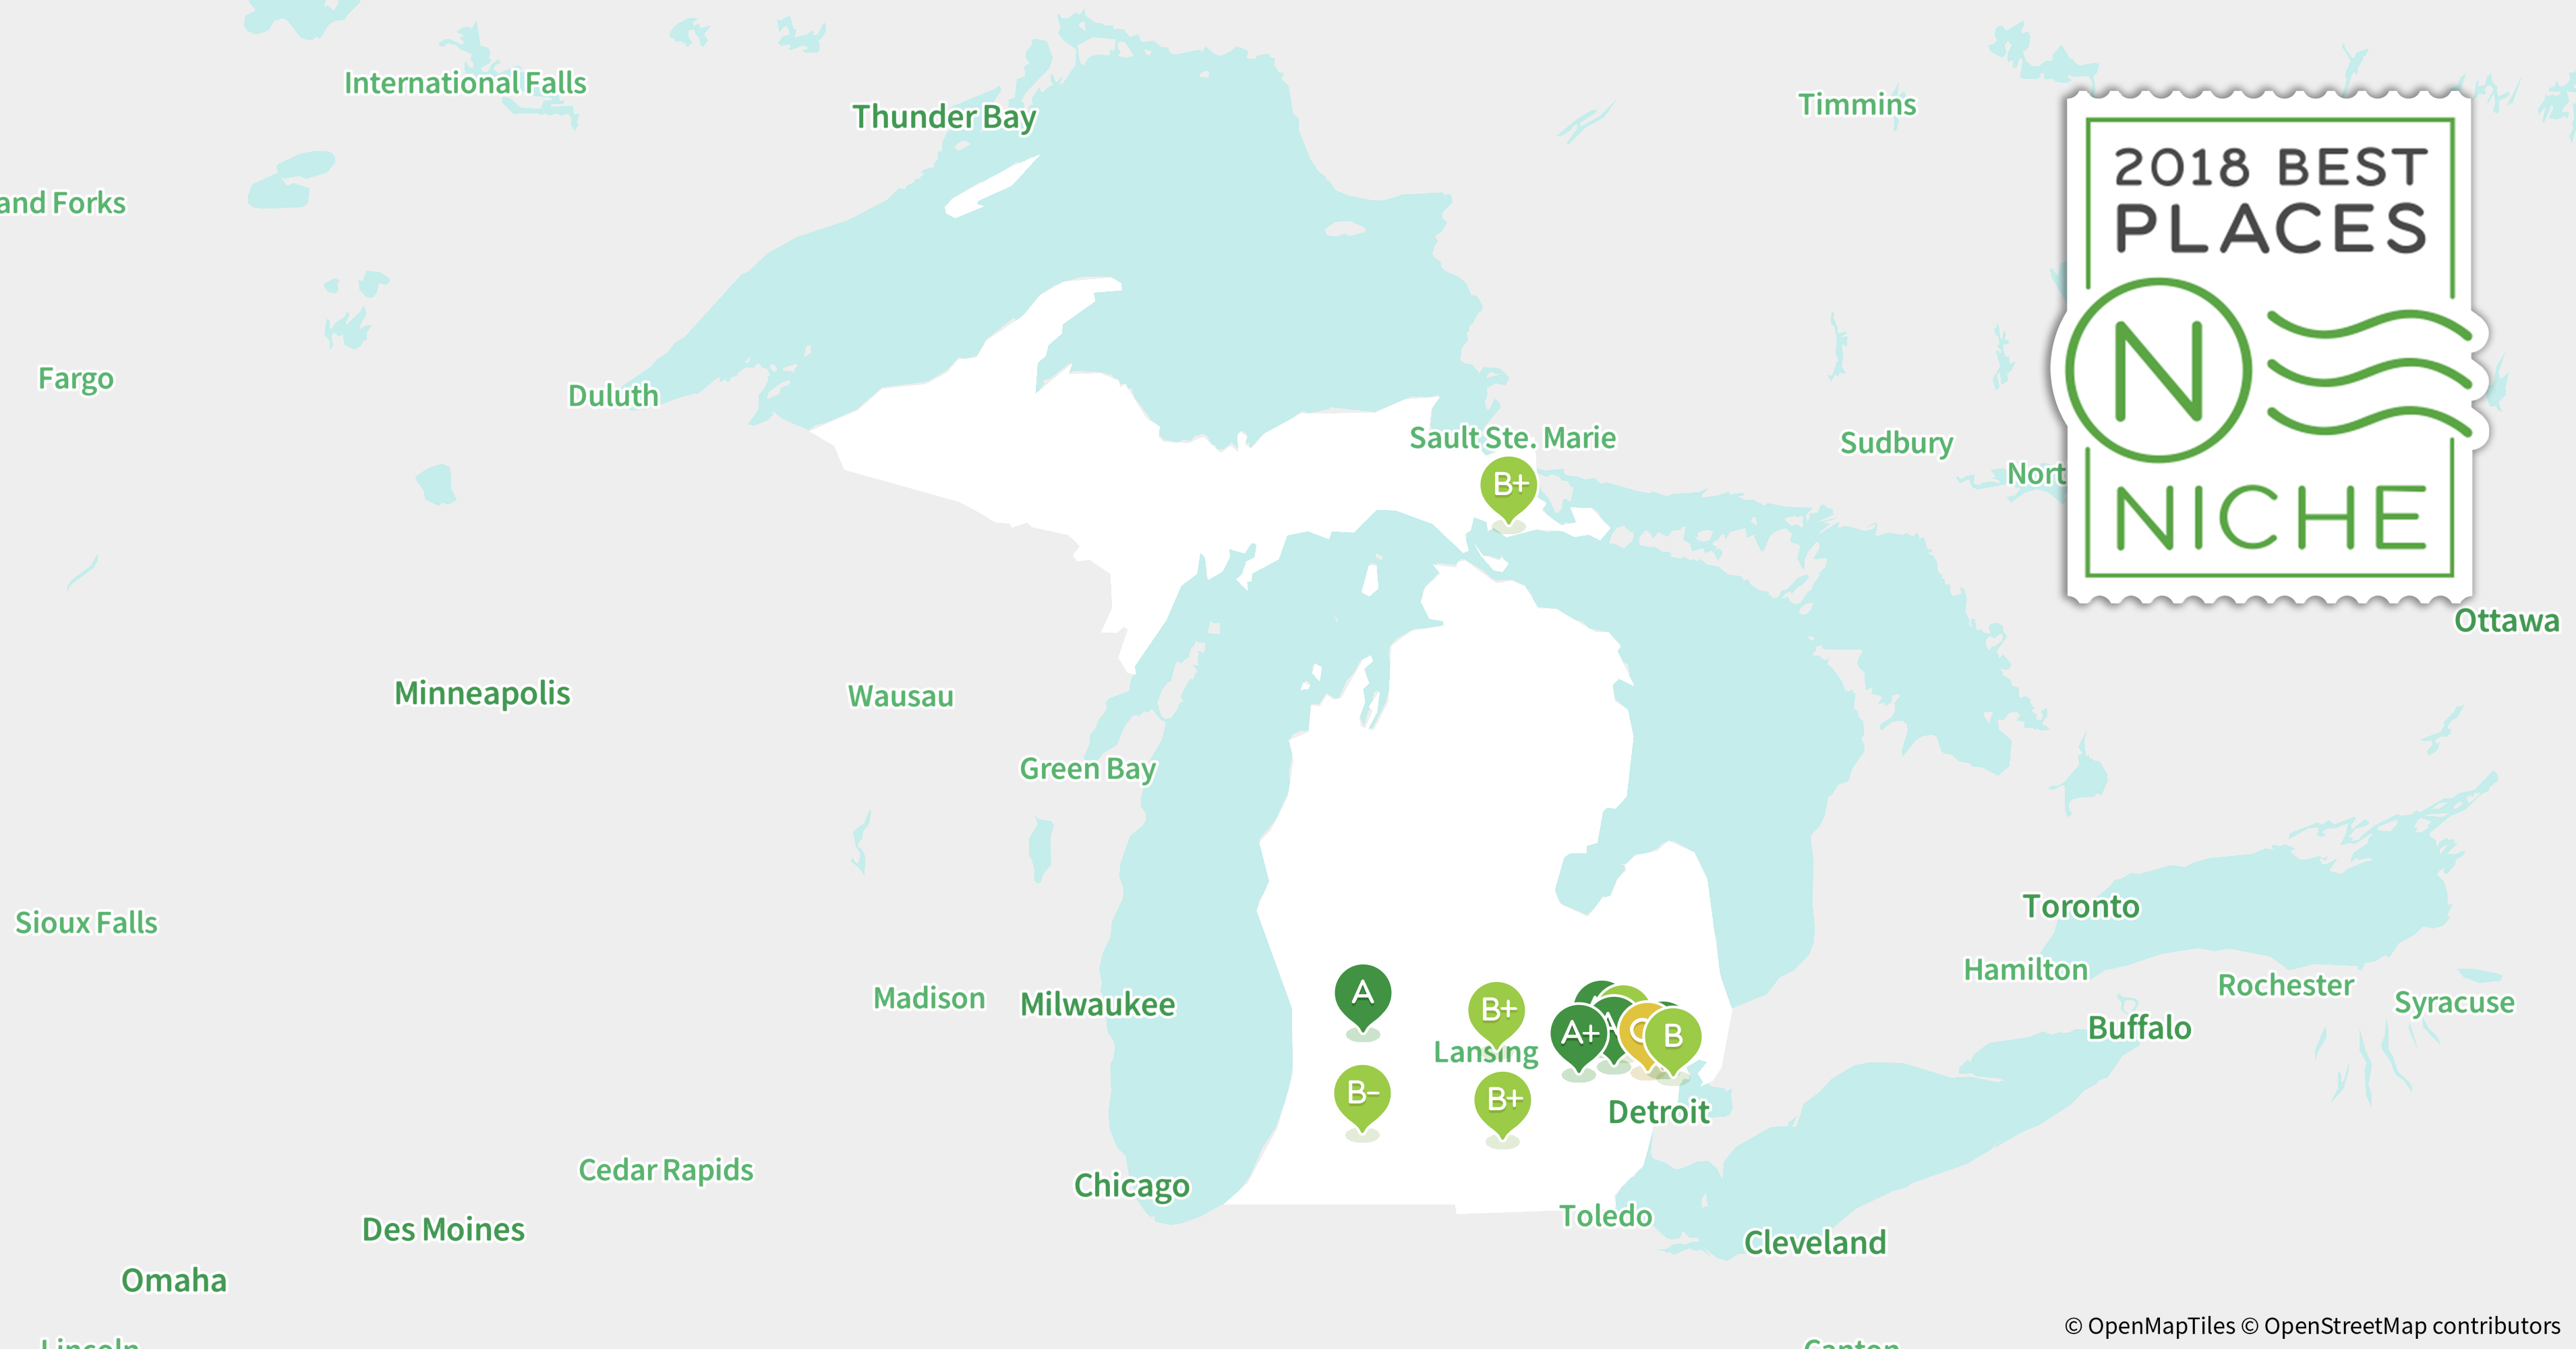 2018 Best Places to Live in Michigan Niche